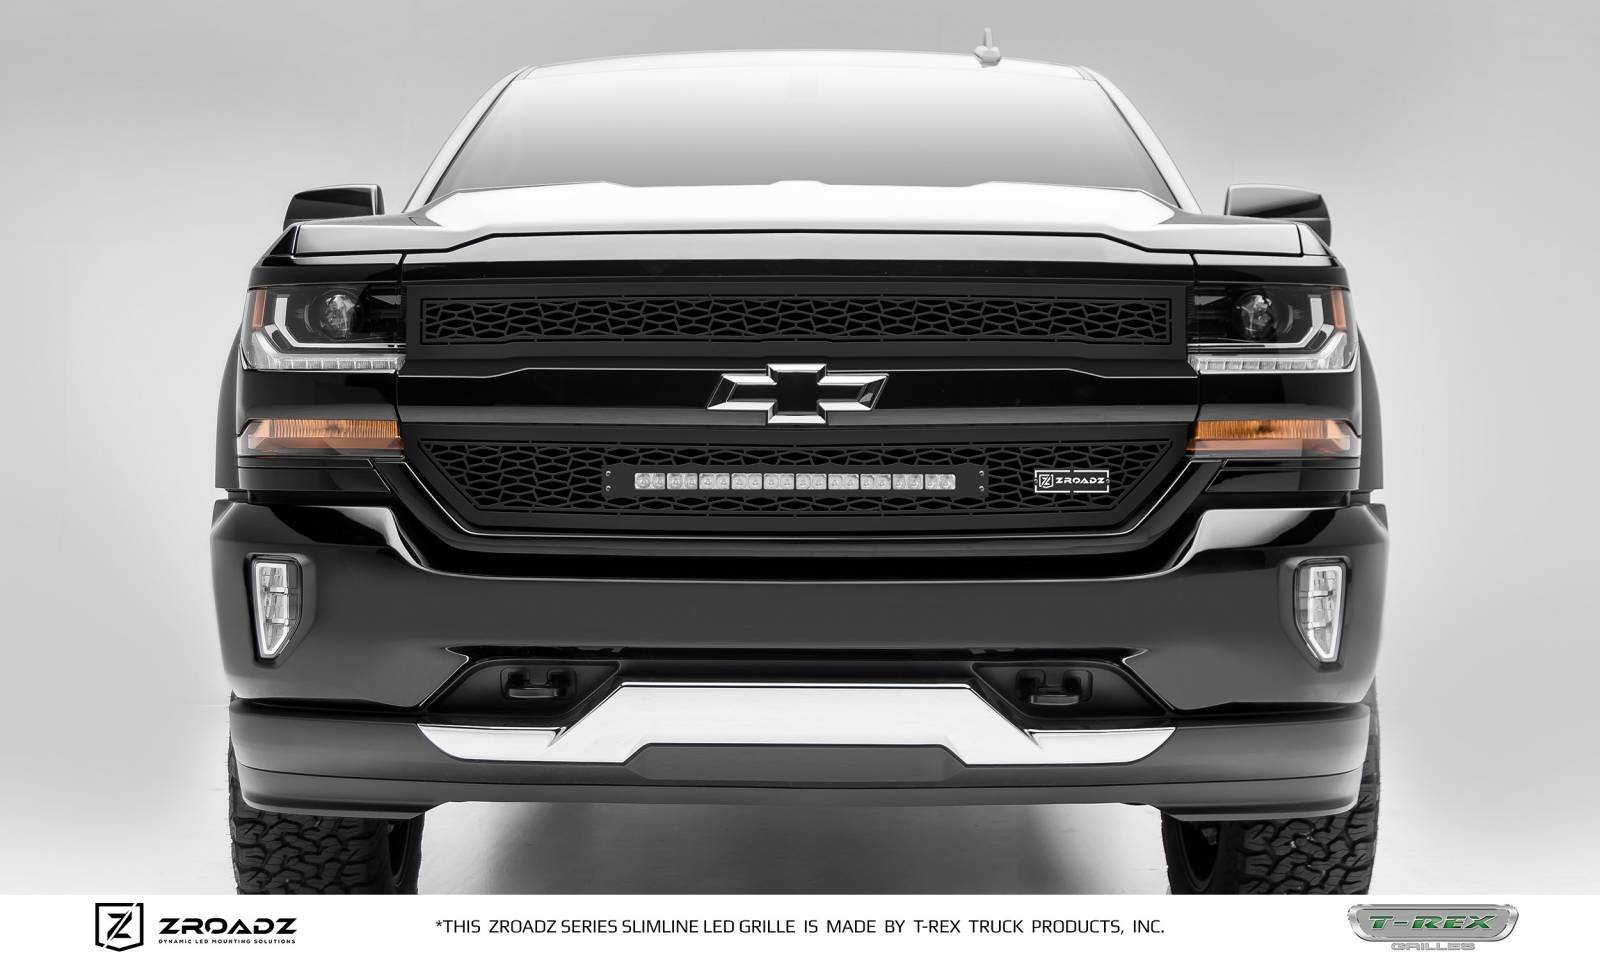 T-REX Grilles - ZROADZ Series - 2 PC Main Insert - Grille w/ One 20 Inch Slim Line Single Row LED Light Bar - Part# Z311281